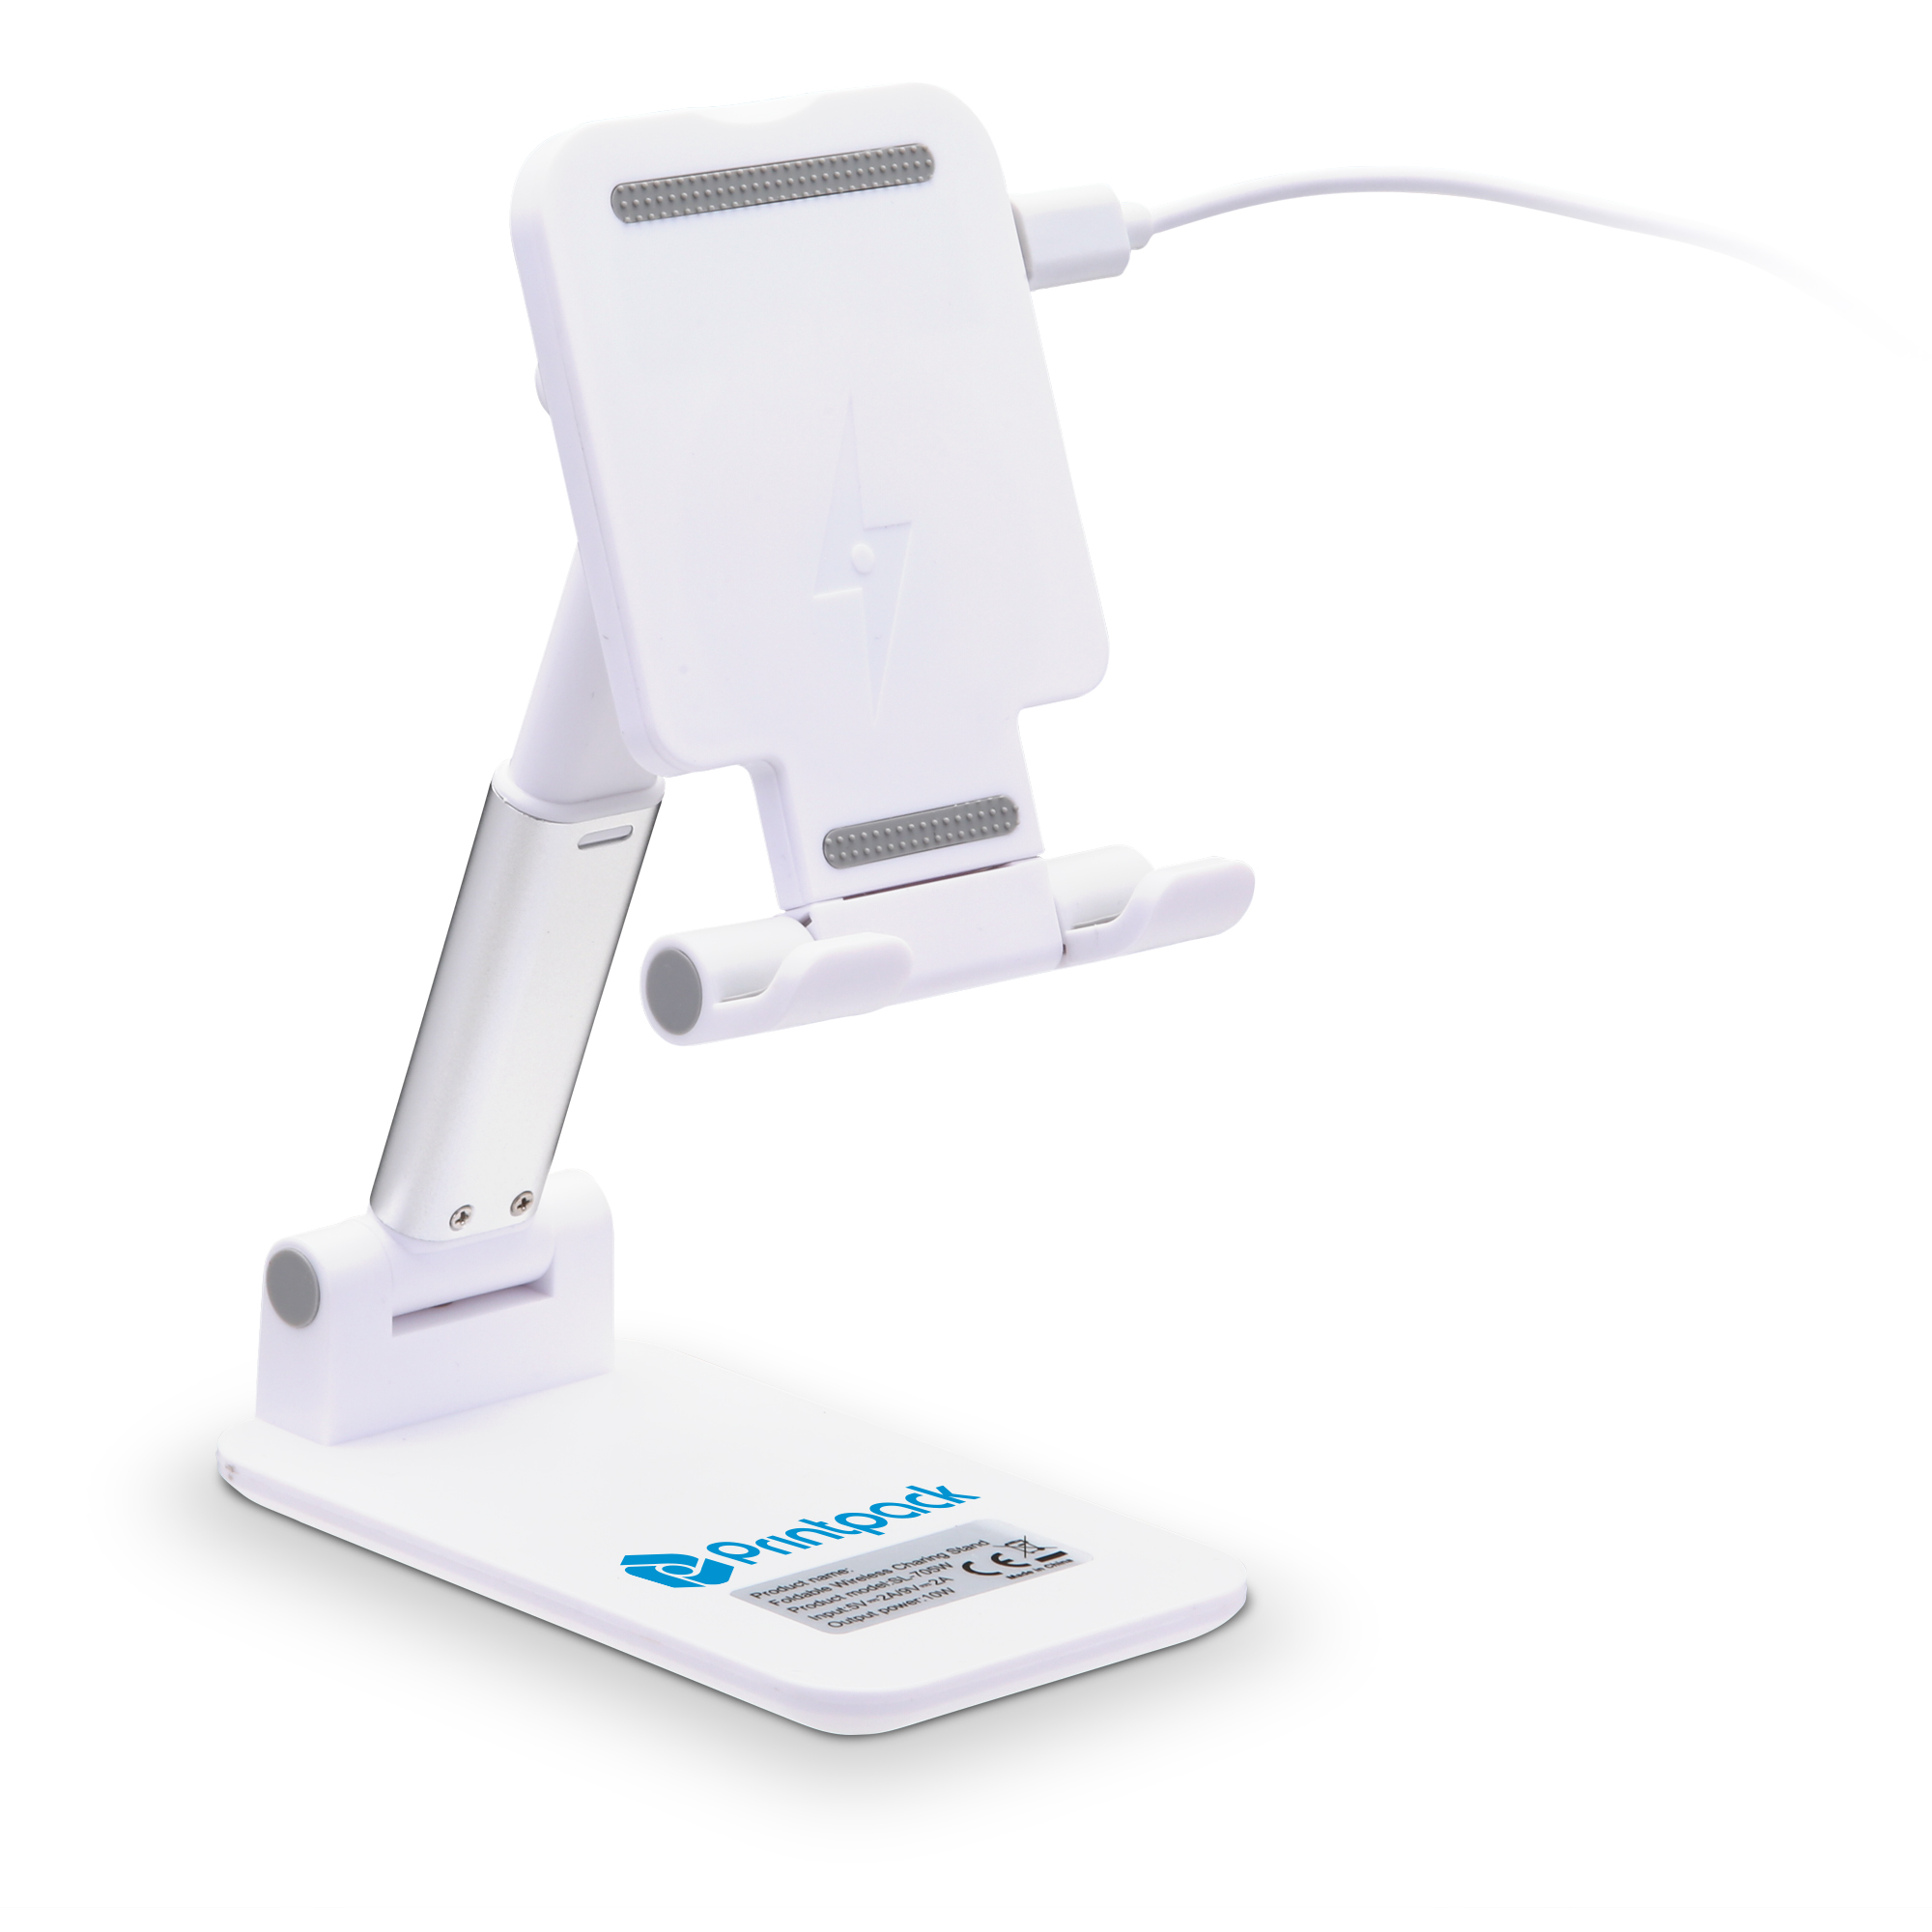 HF-08 Desktop Cell Phone Holder w/ Wireless Charger